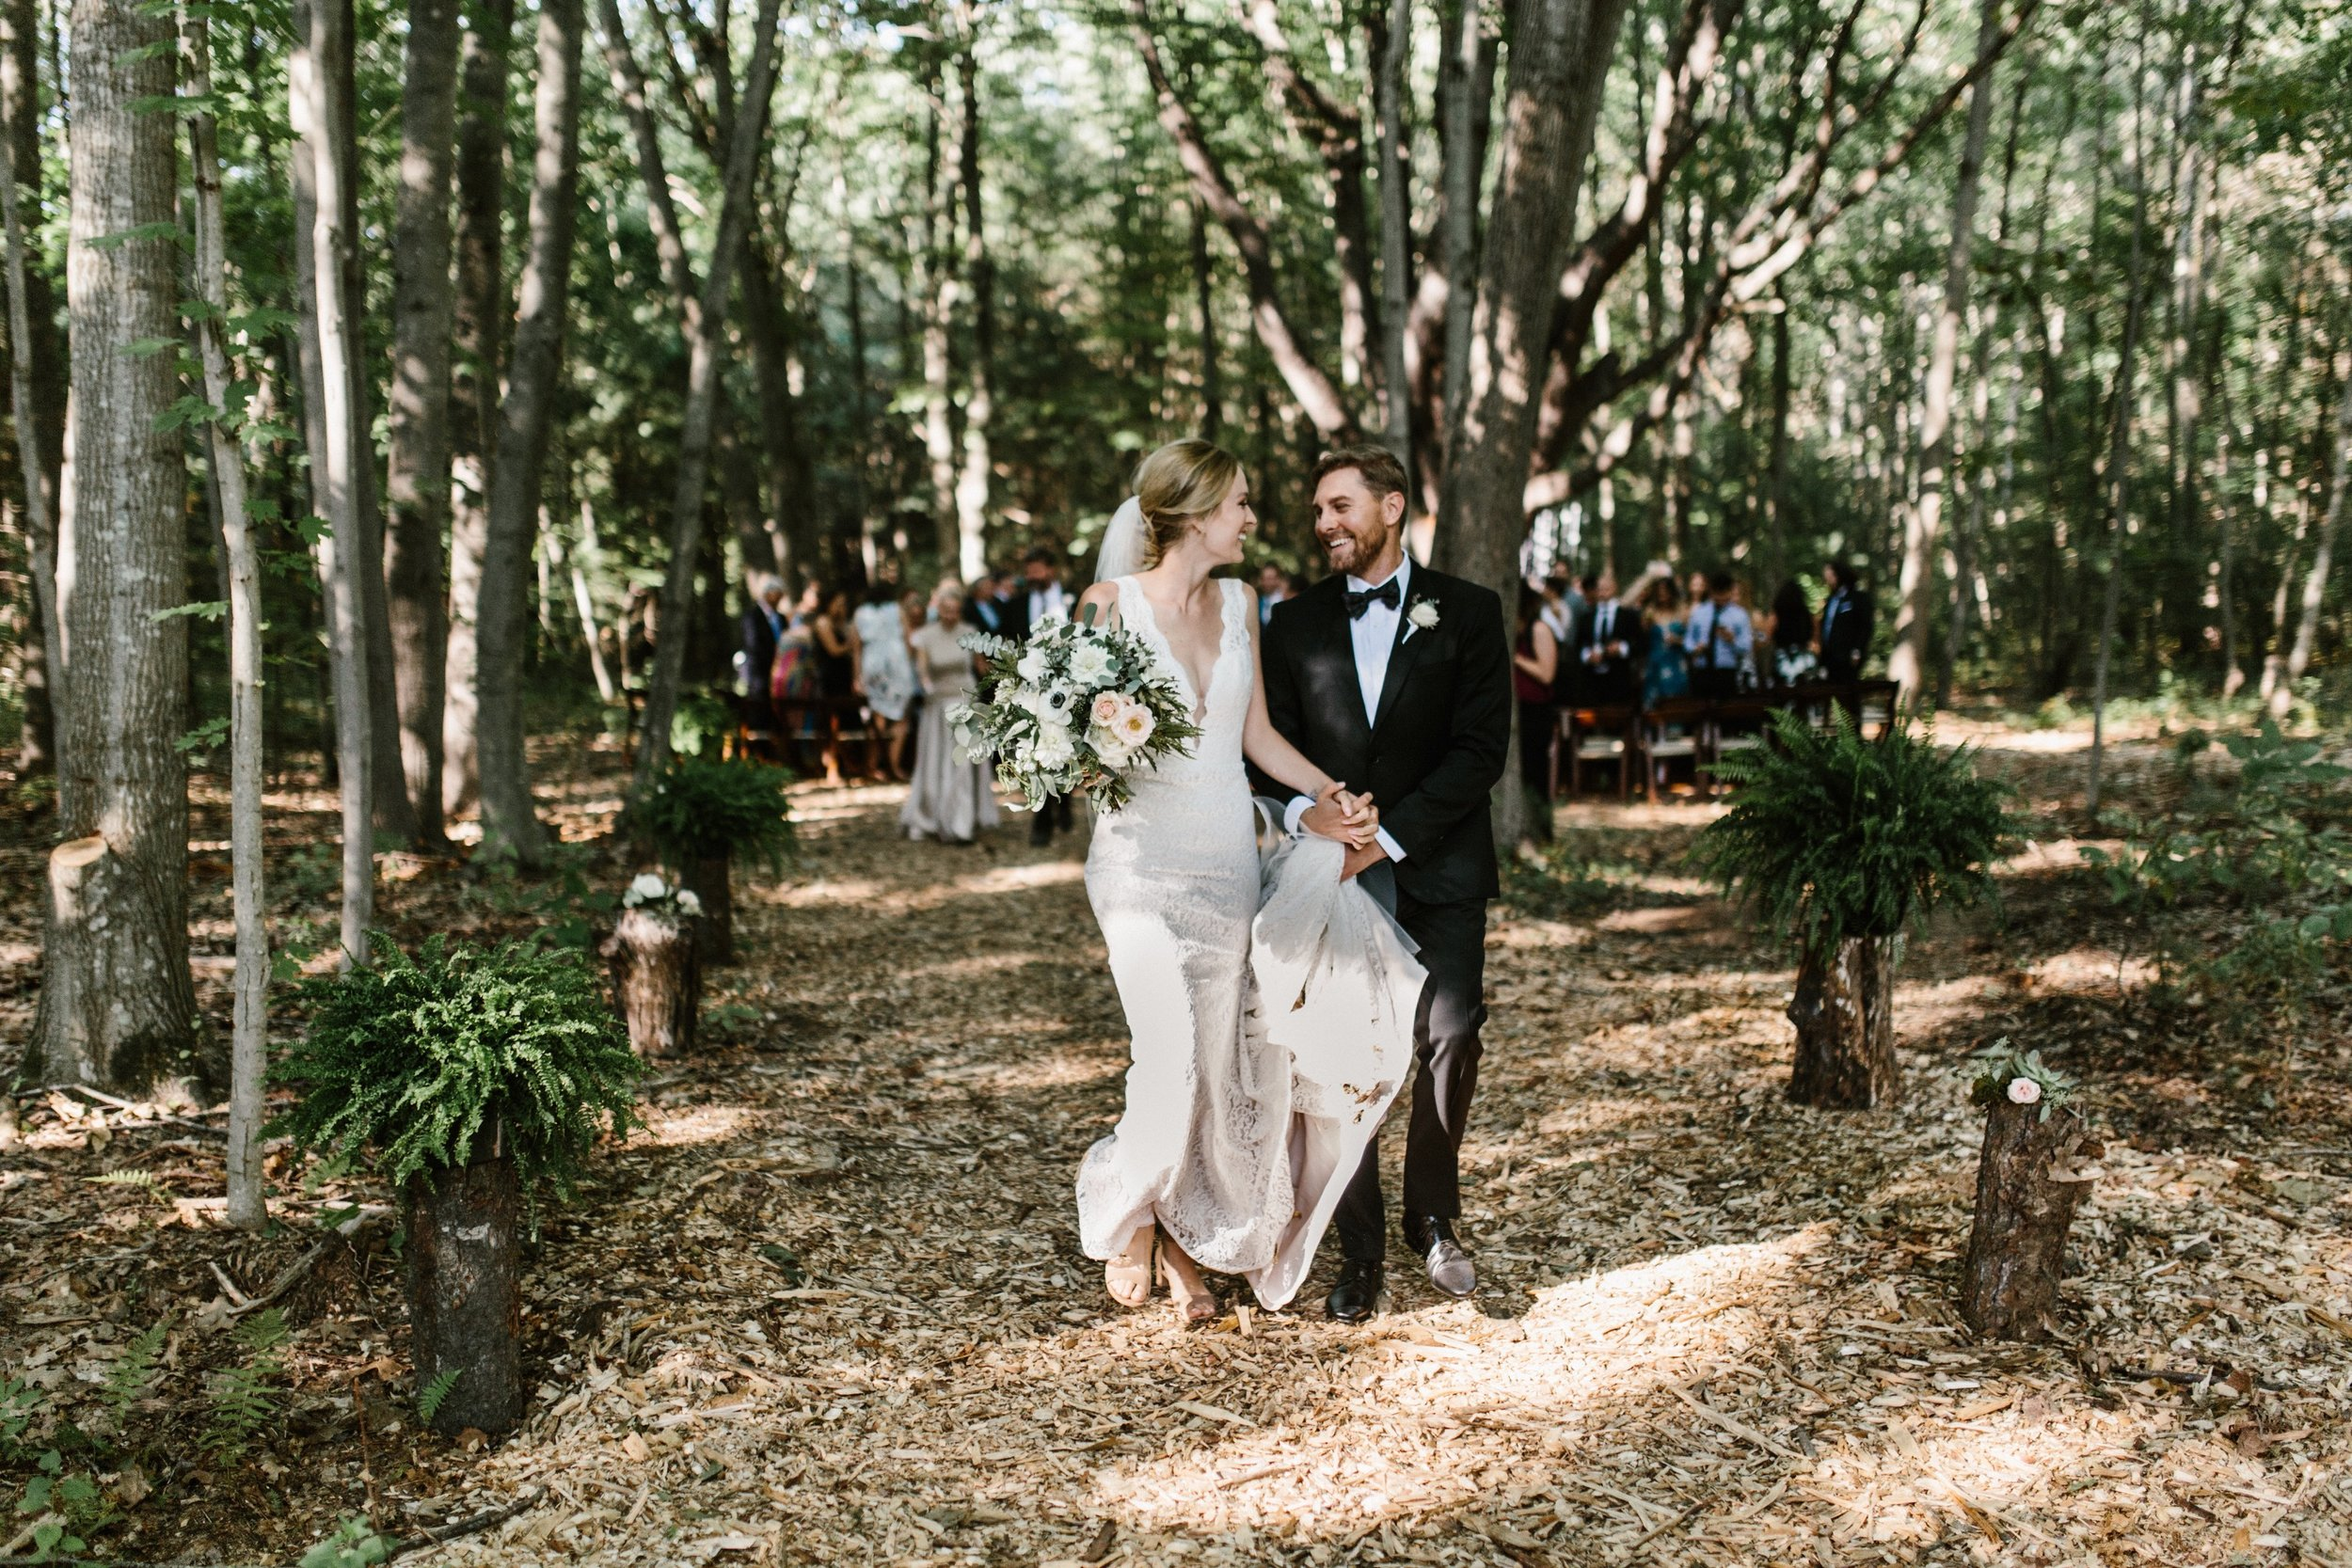 PRIVATE ESTATE | GREENLAND, NH  Aaron + Whiteny Photography